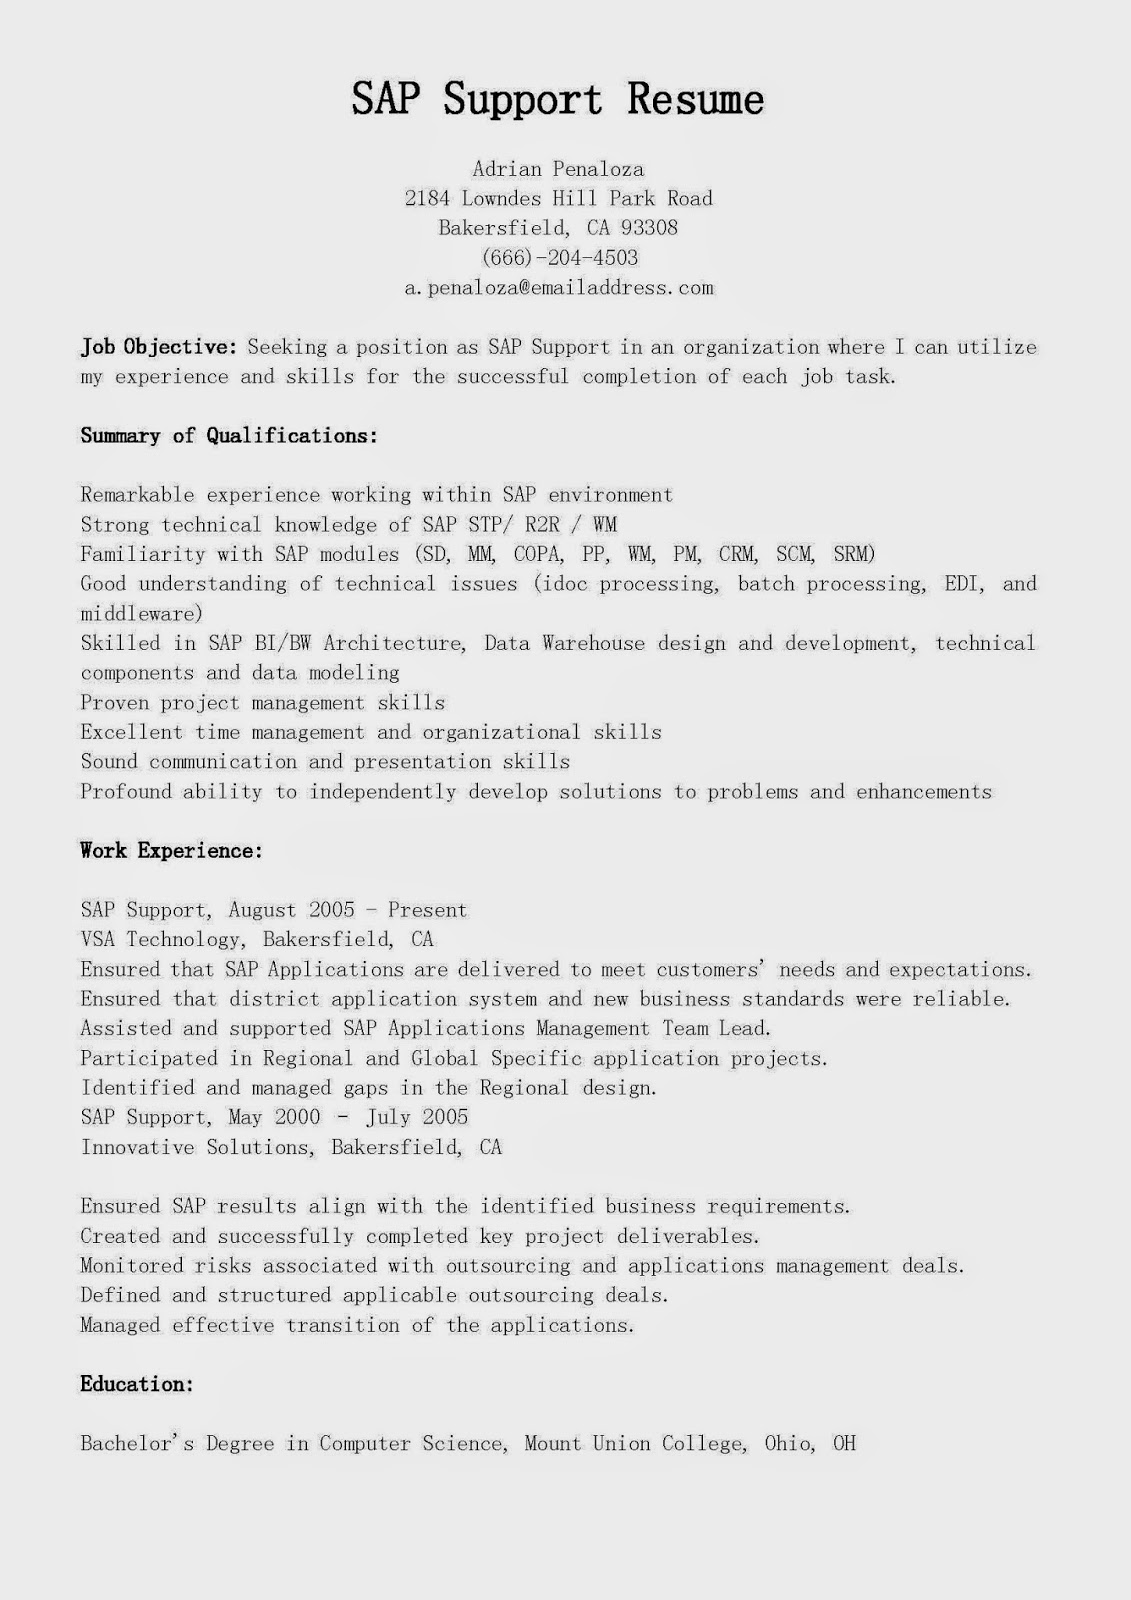 resume samples sap support resume sample